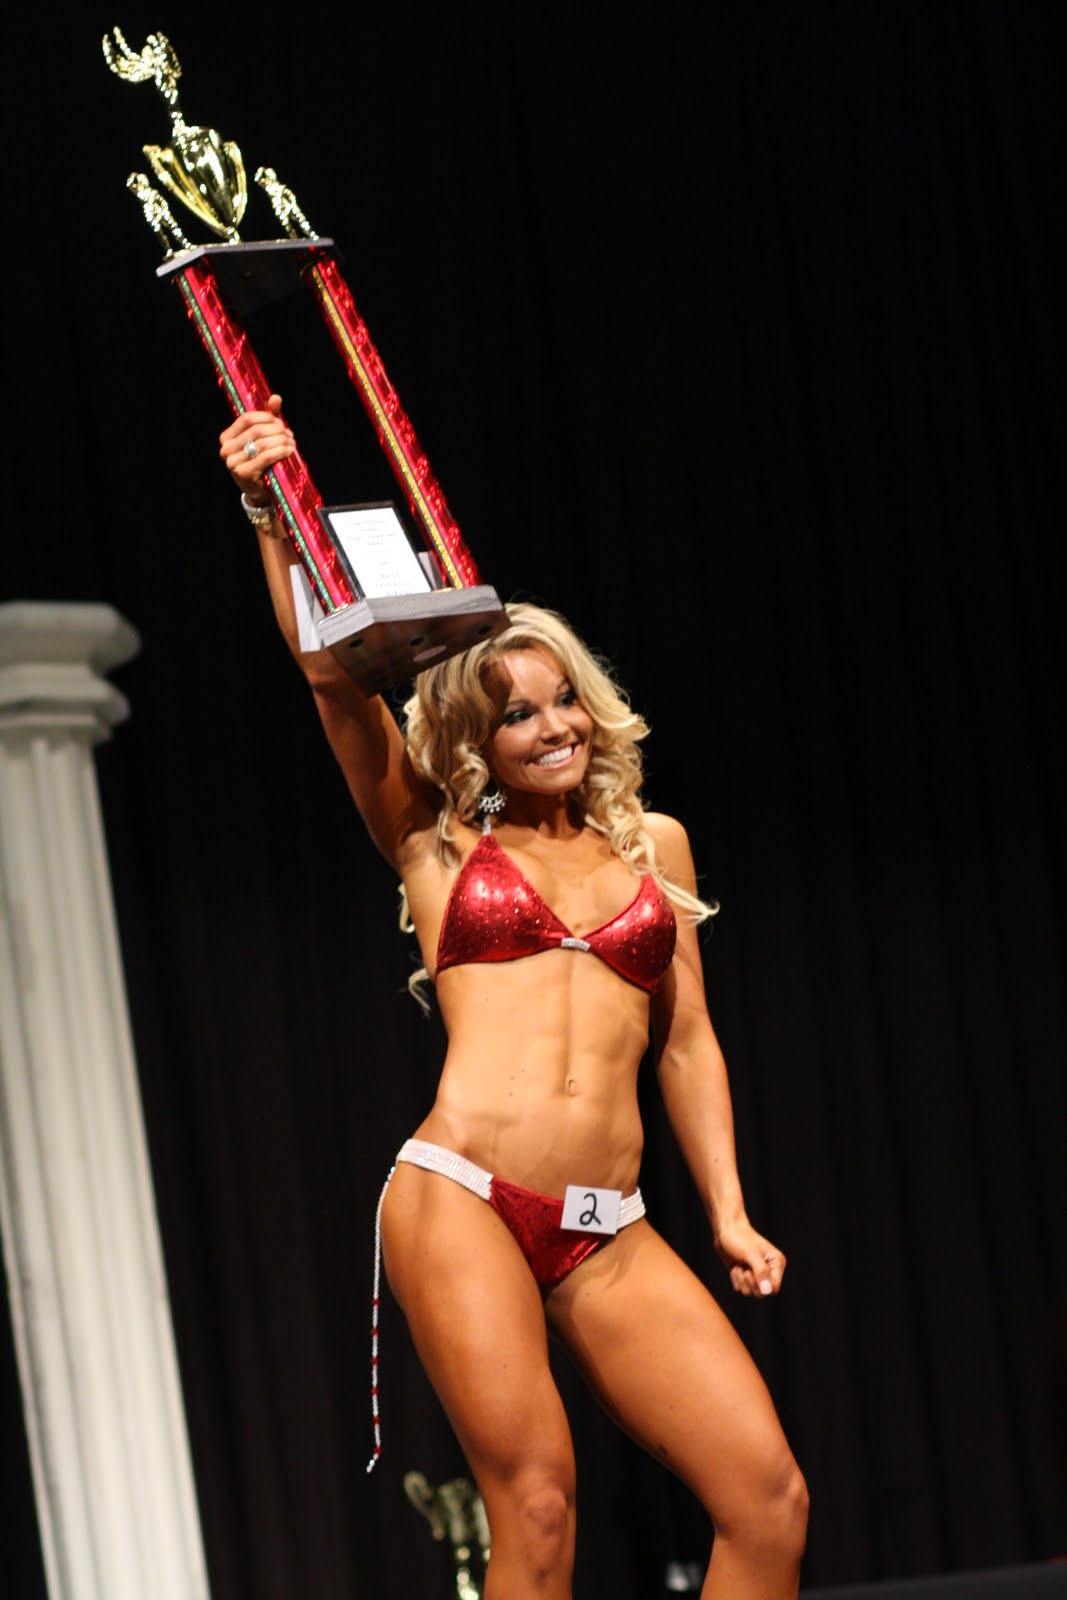 05e2302cf269e The winner of the short class had great stage presence as I mentioned  earlier but Justine had amazing stage presence and a physique that matches  ...